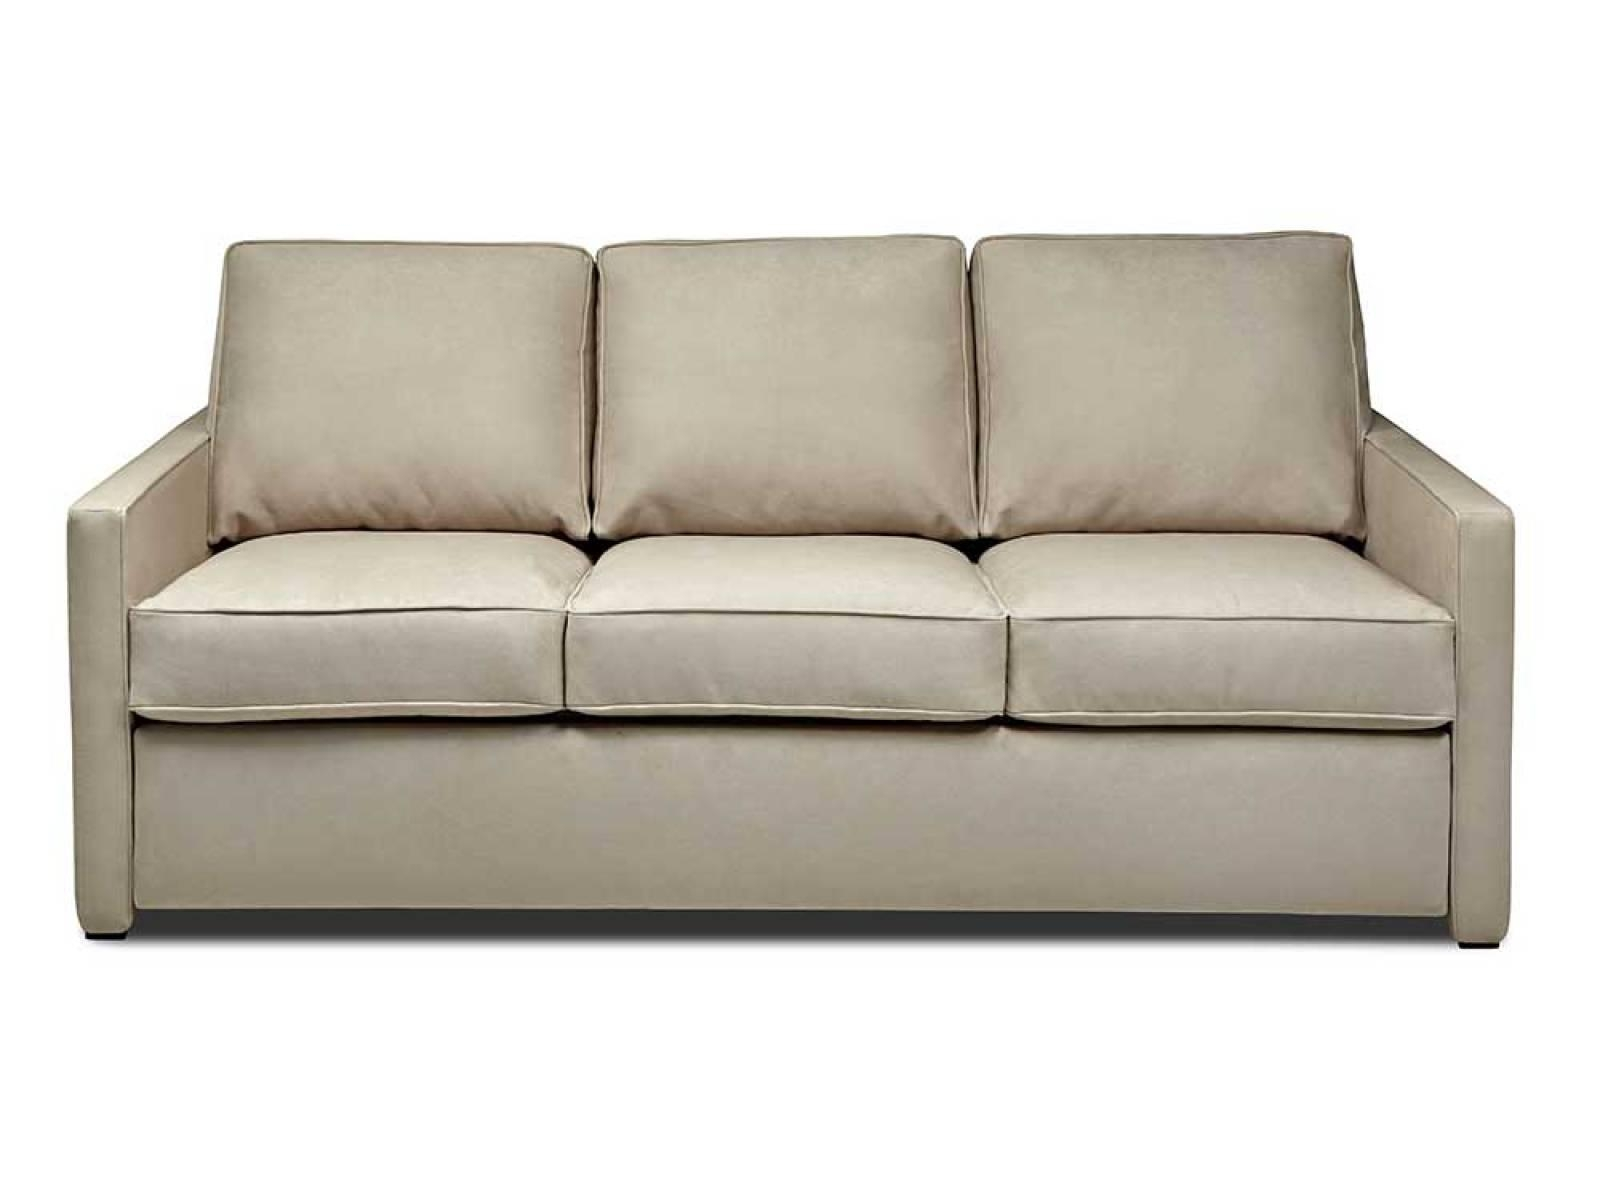 ▻ Sofa : 27 Marvelous King Size Sofa Sleeper Lovely Living Room Intended For King Size Sofa Beds (Image 1 of 20)